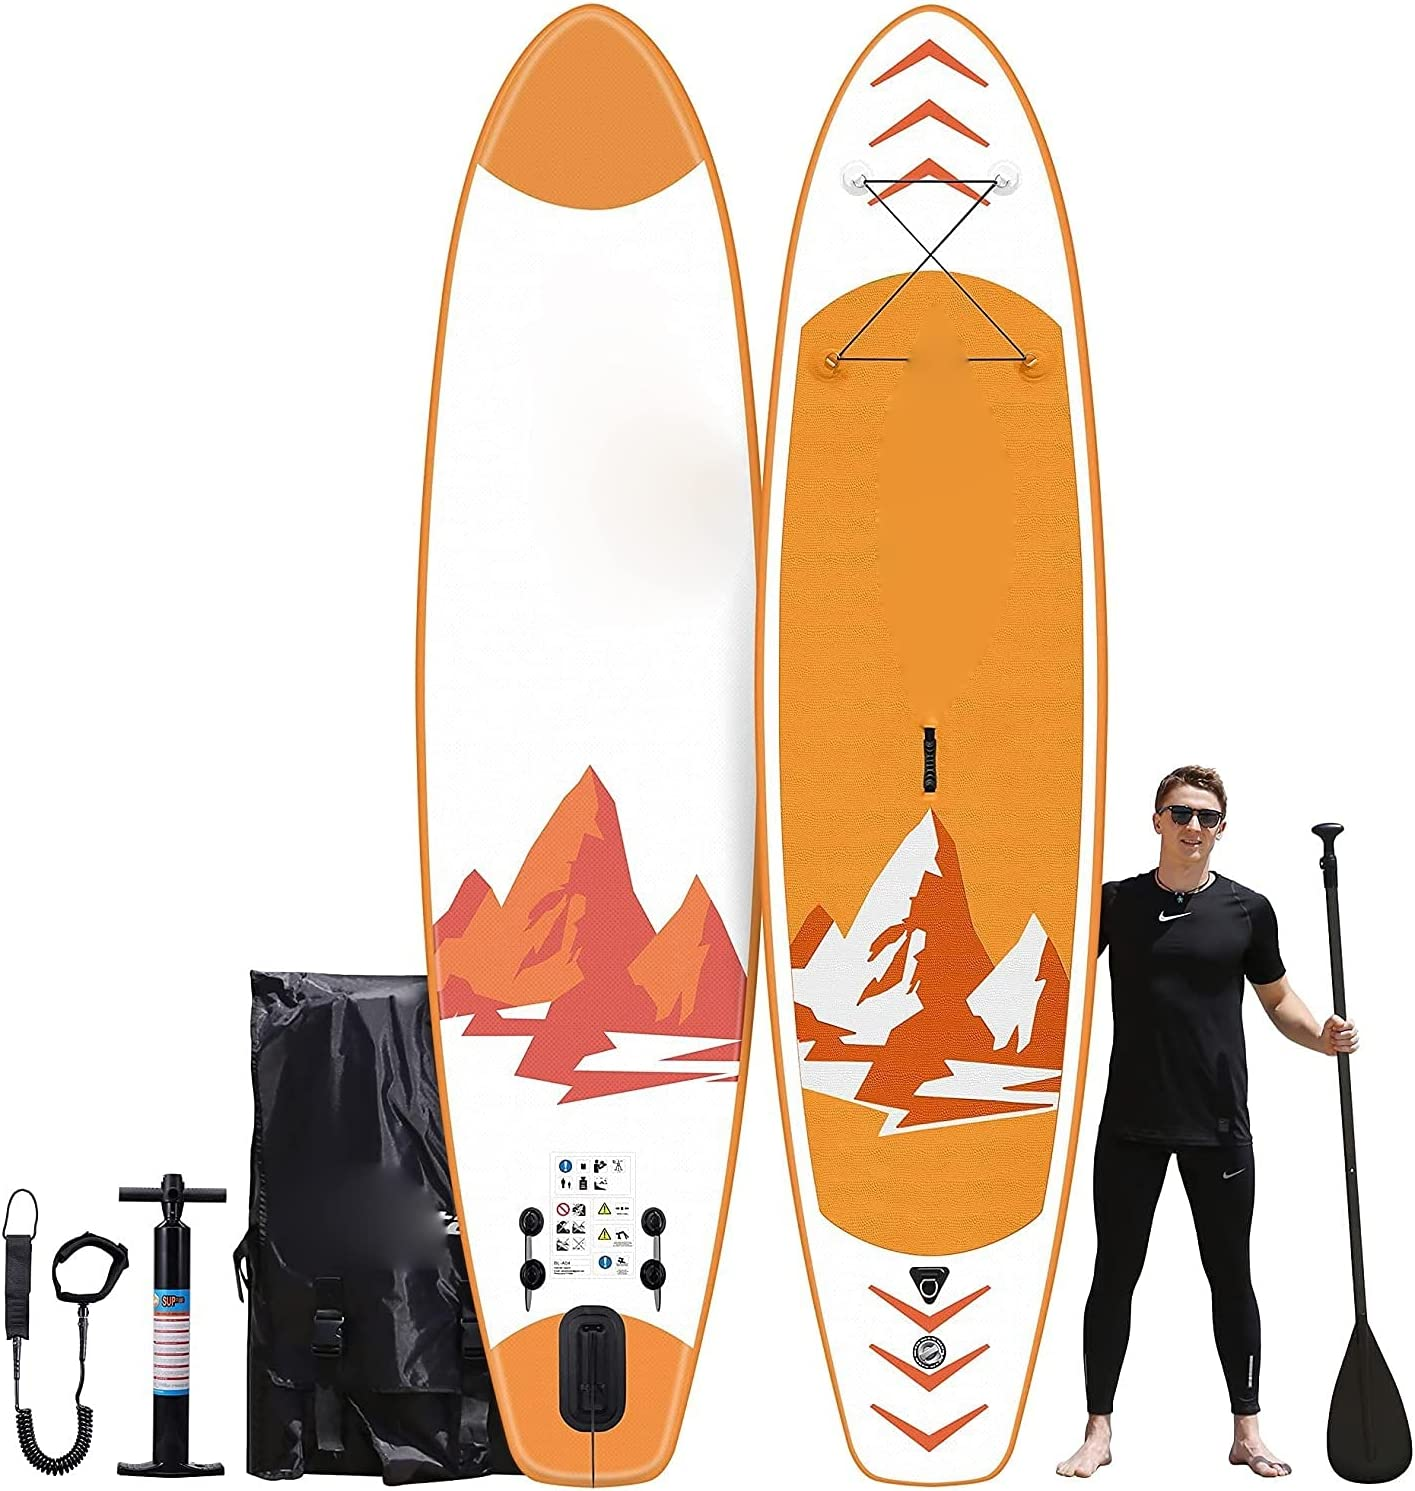 GGZZ Bombing free shipping Famistar 12' quality assurance All-Around Inflatable up - Paddle Board Stand